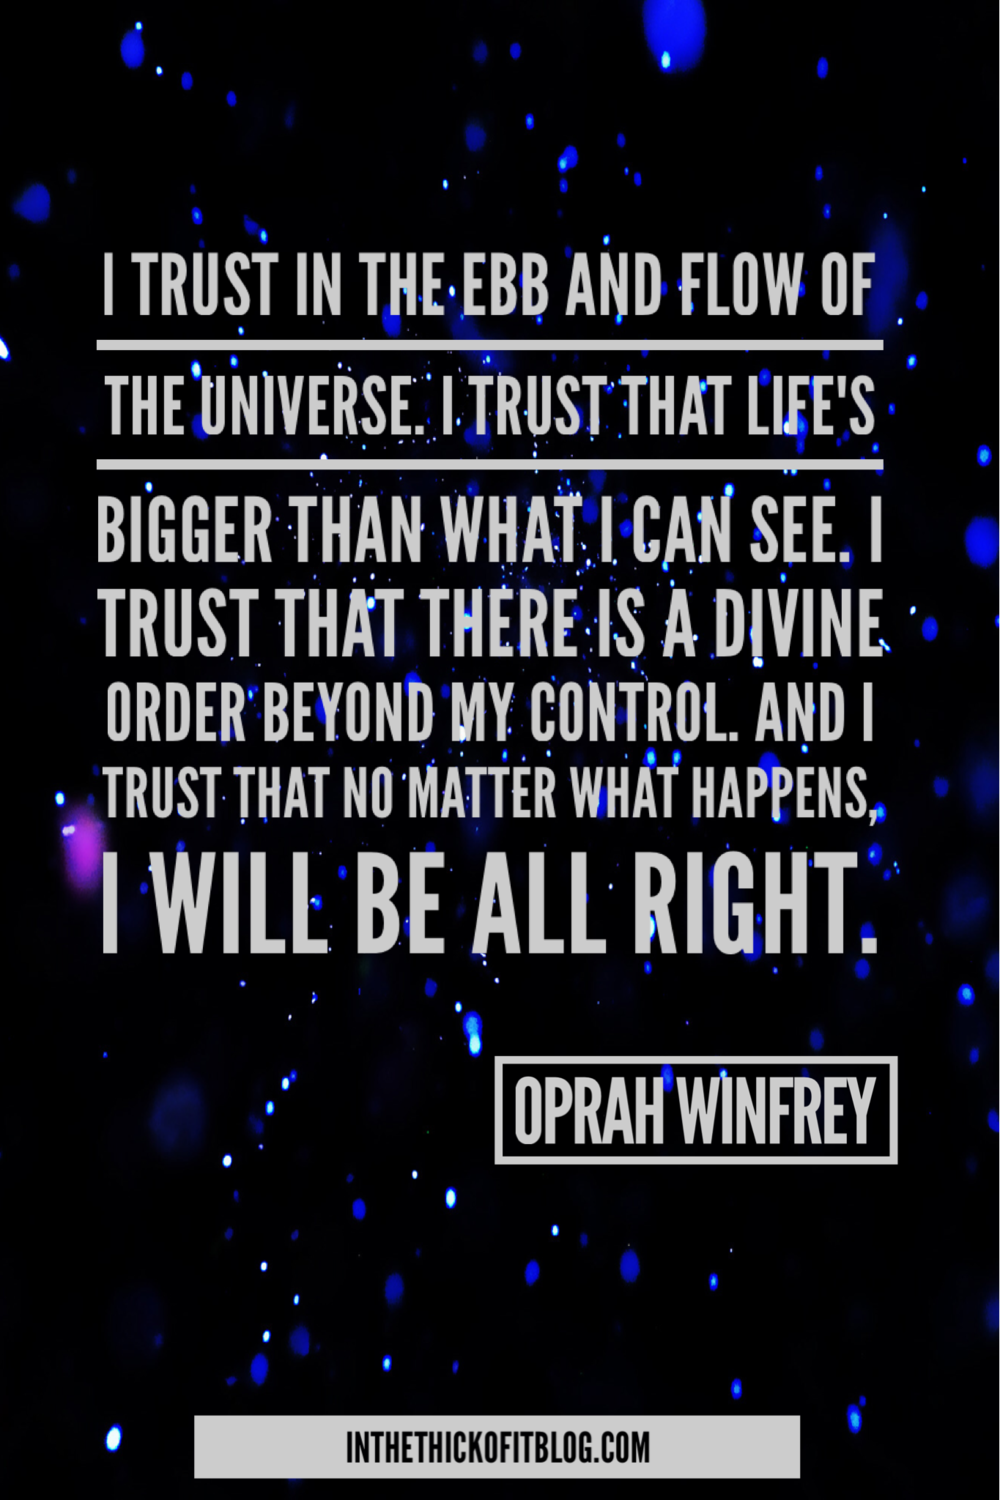 Ebb and Flow #OprahWinfreyQuote-inthethickofitblog.com